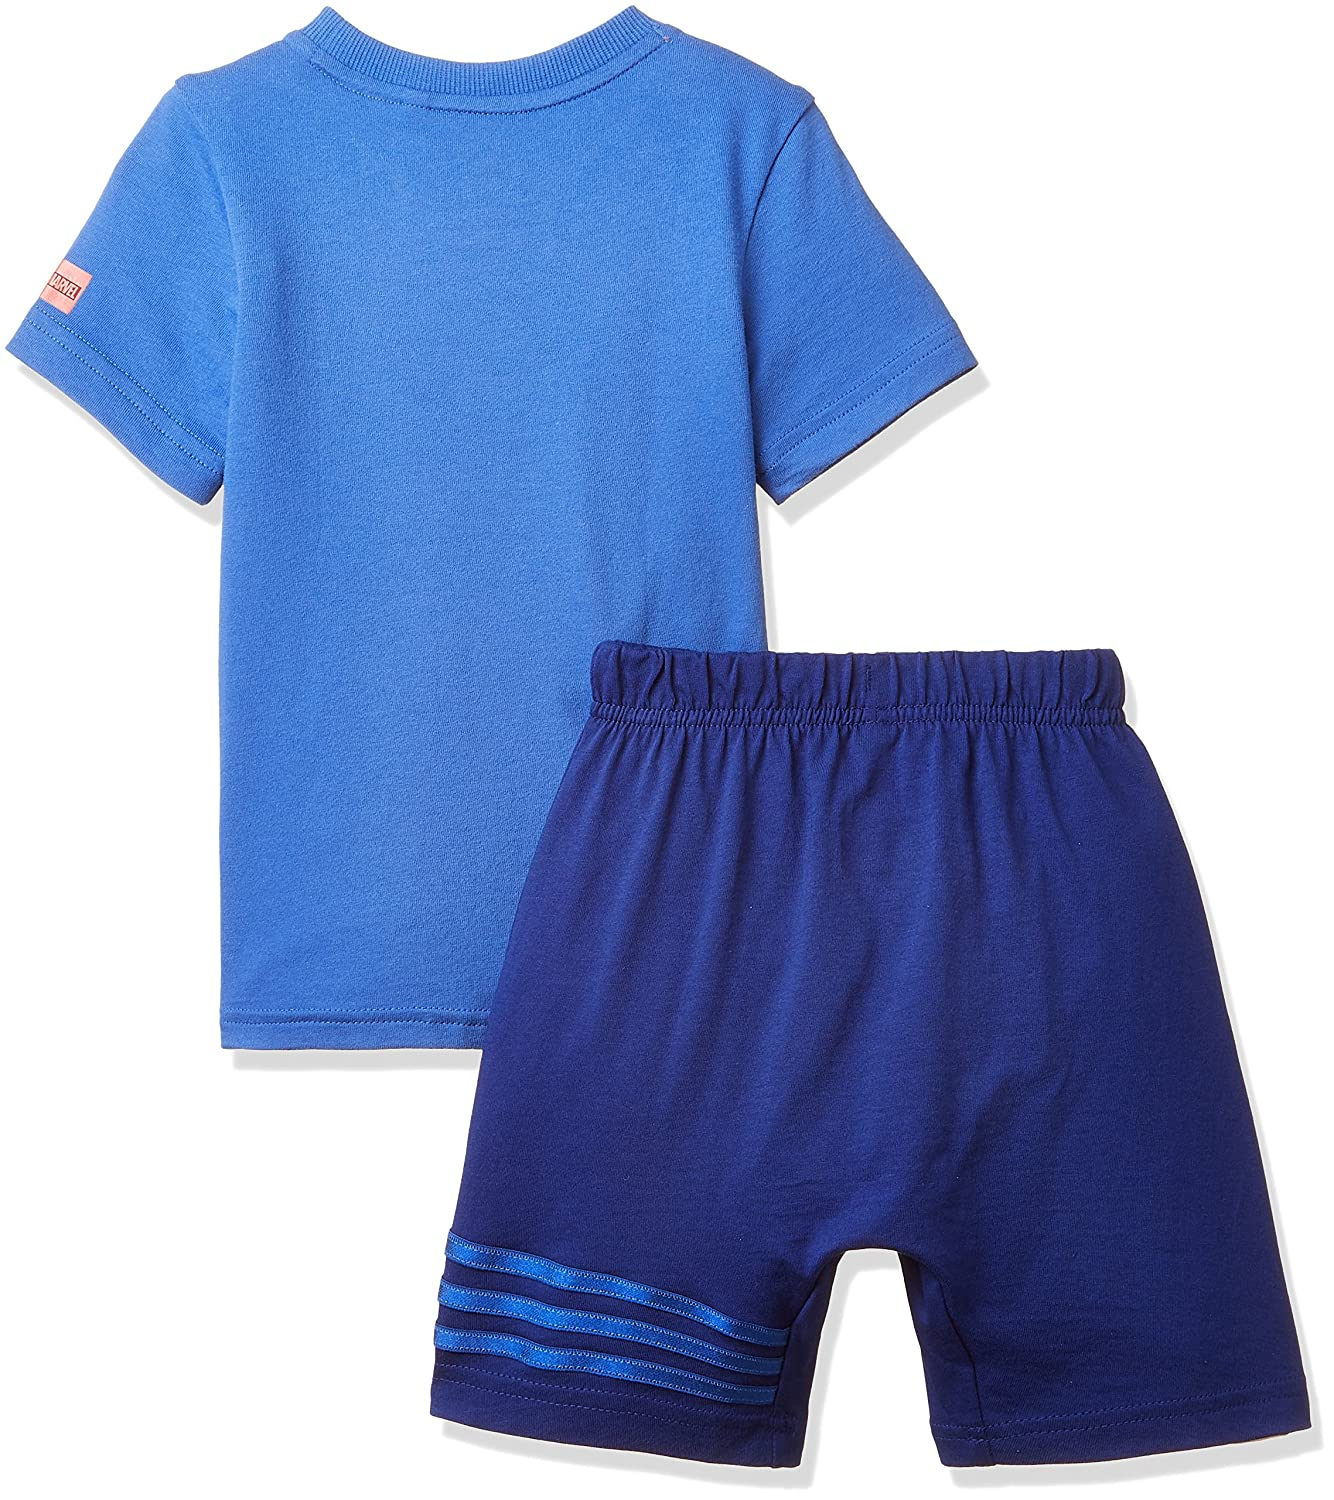 adidas Children's To To Dy Sm Sum Sport Set: Amazon.co.uk